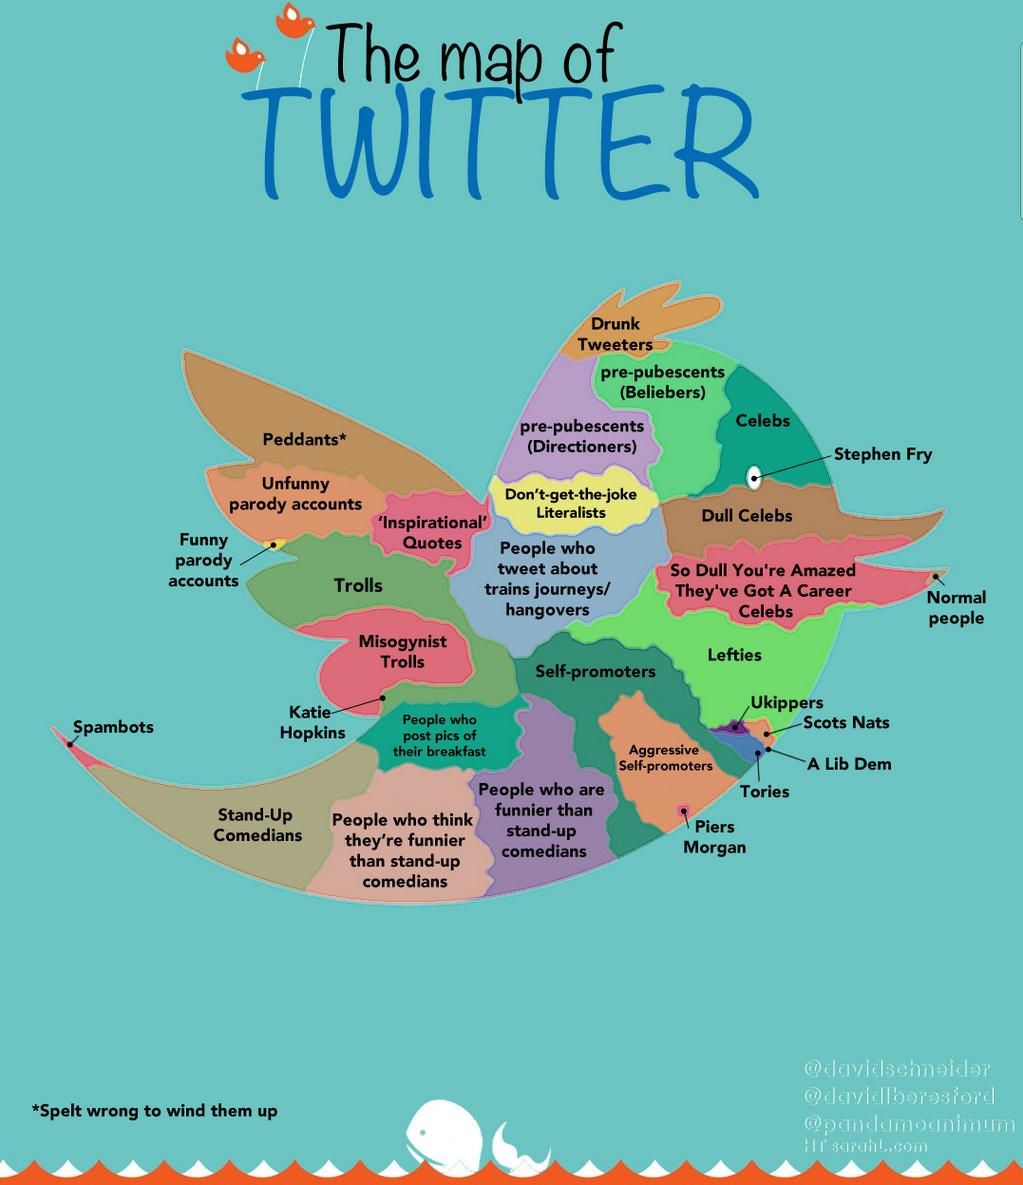 Phew! I'm JUST the right side of dull according to the latest Twitter Map - http://t.co/SKetKOWTYL